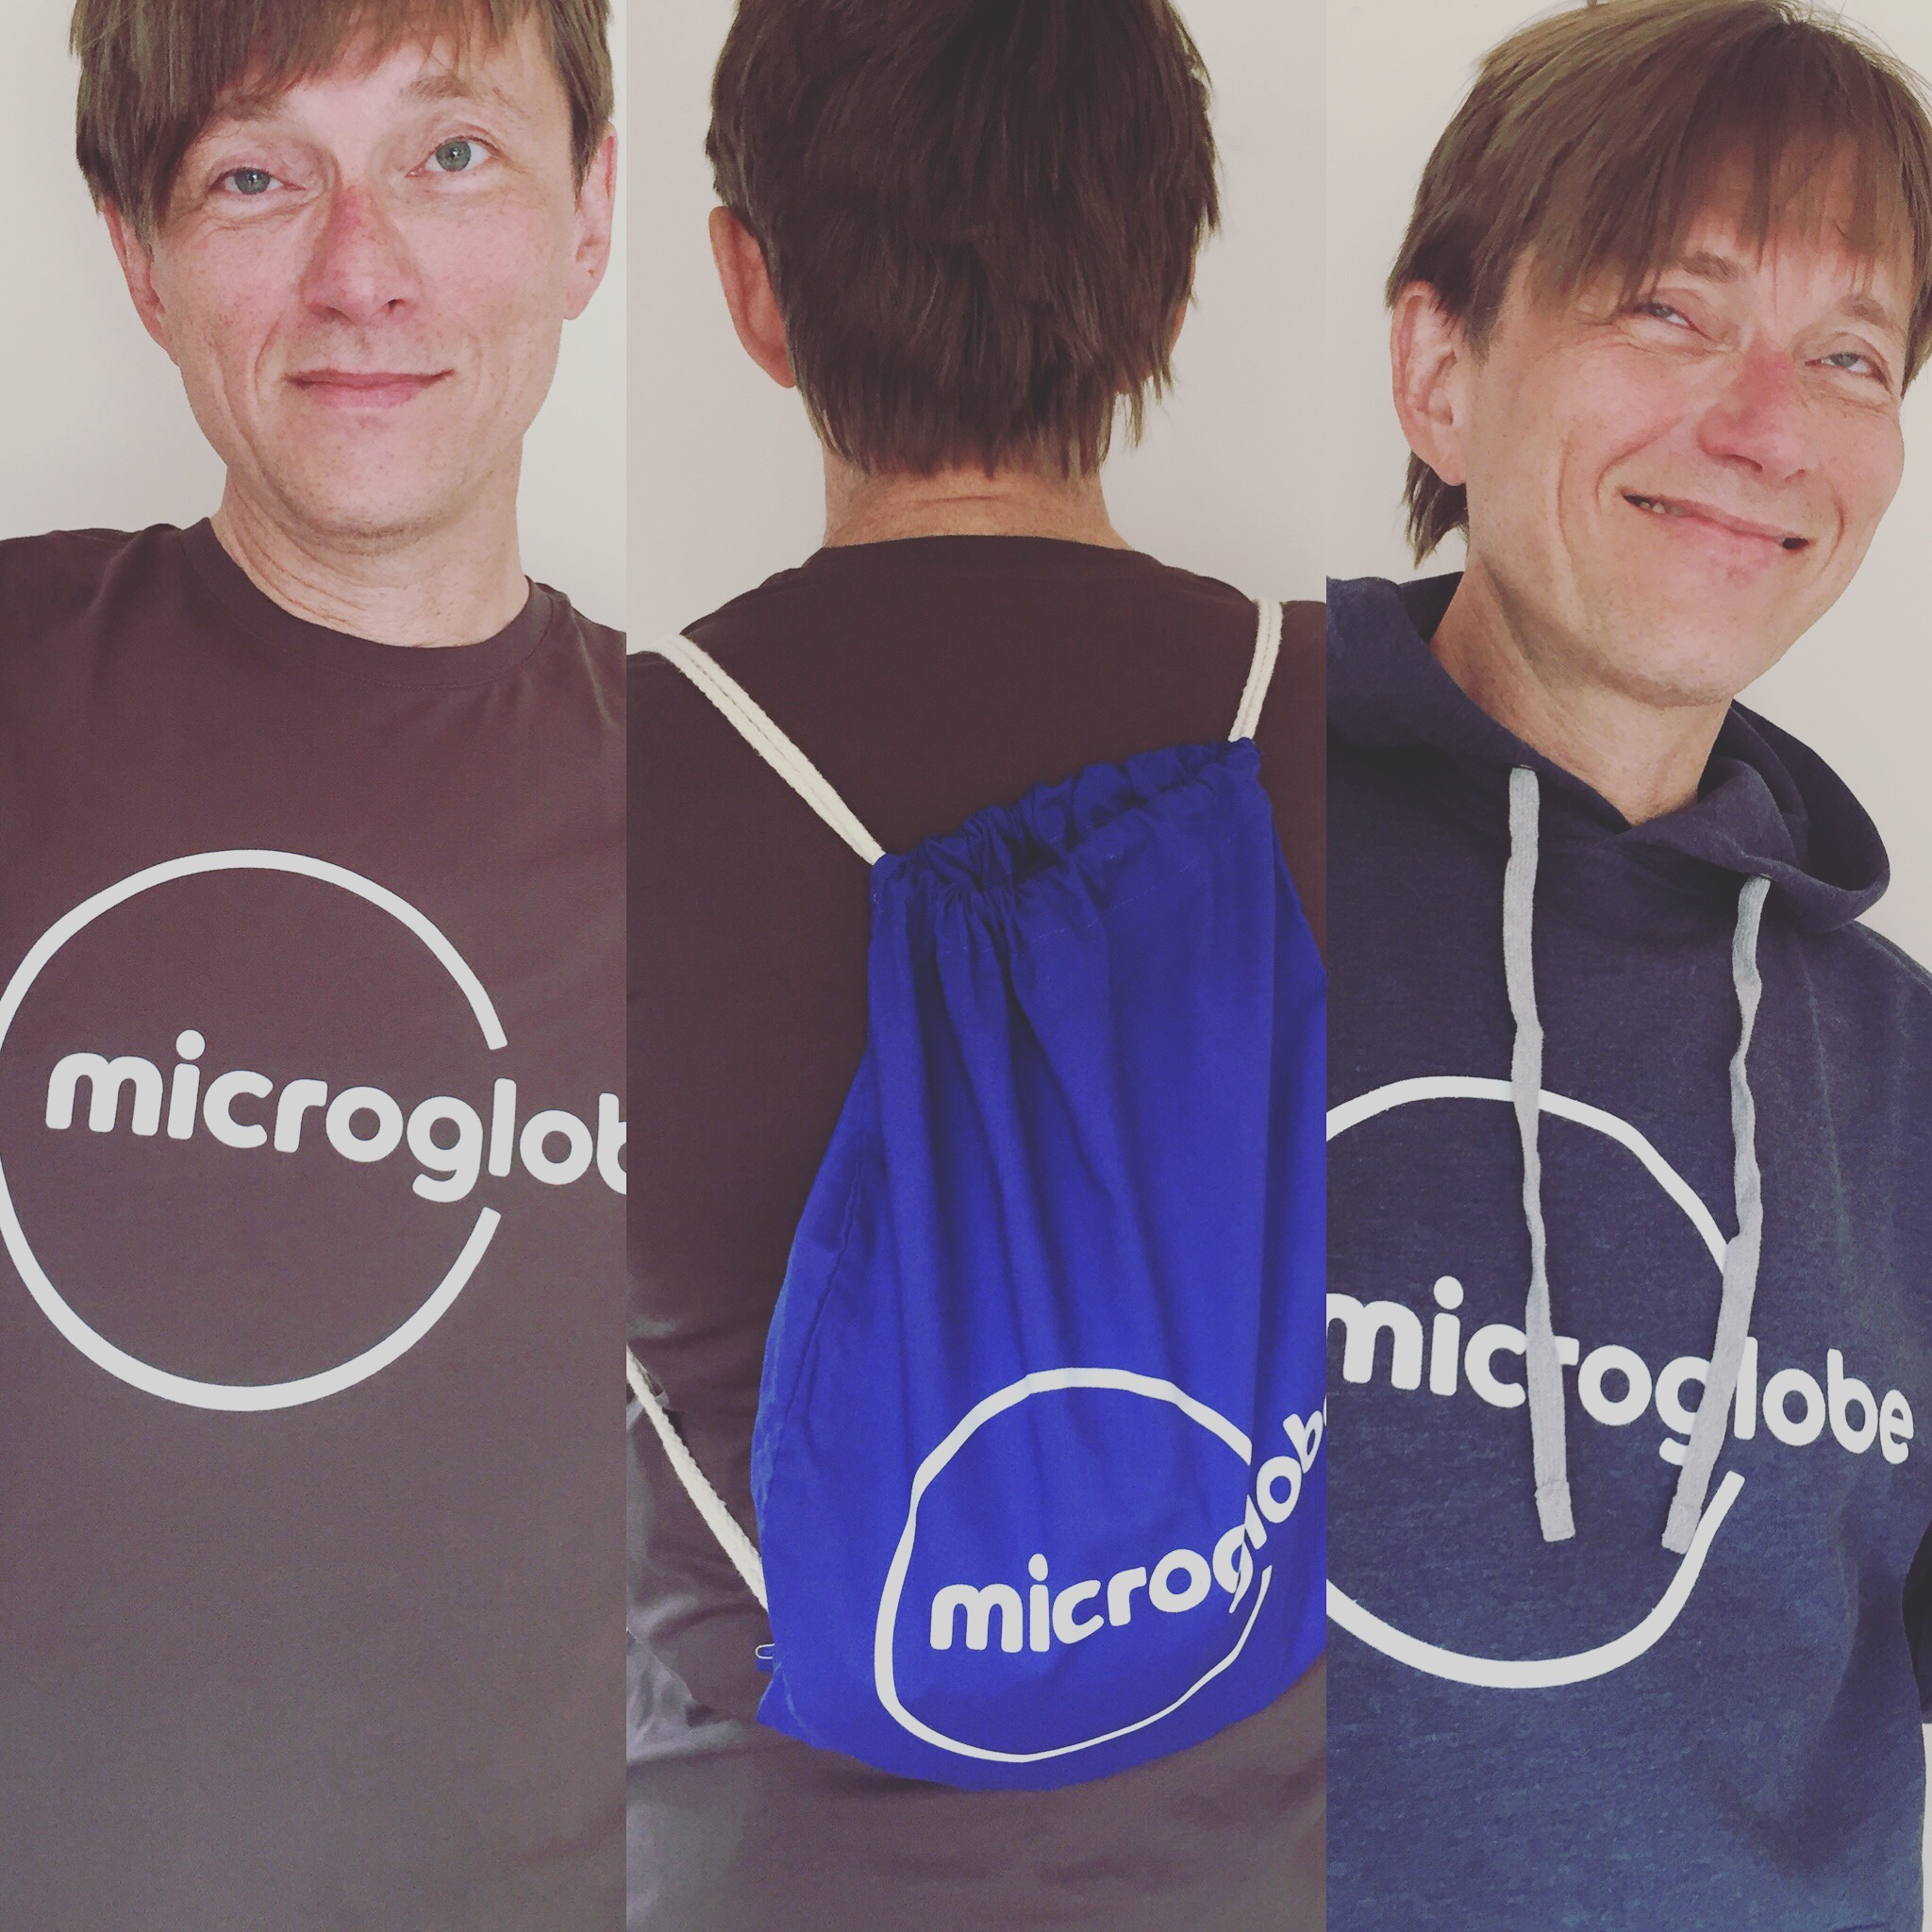 Introducing microglobe merch